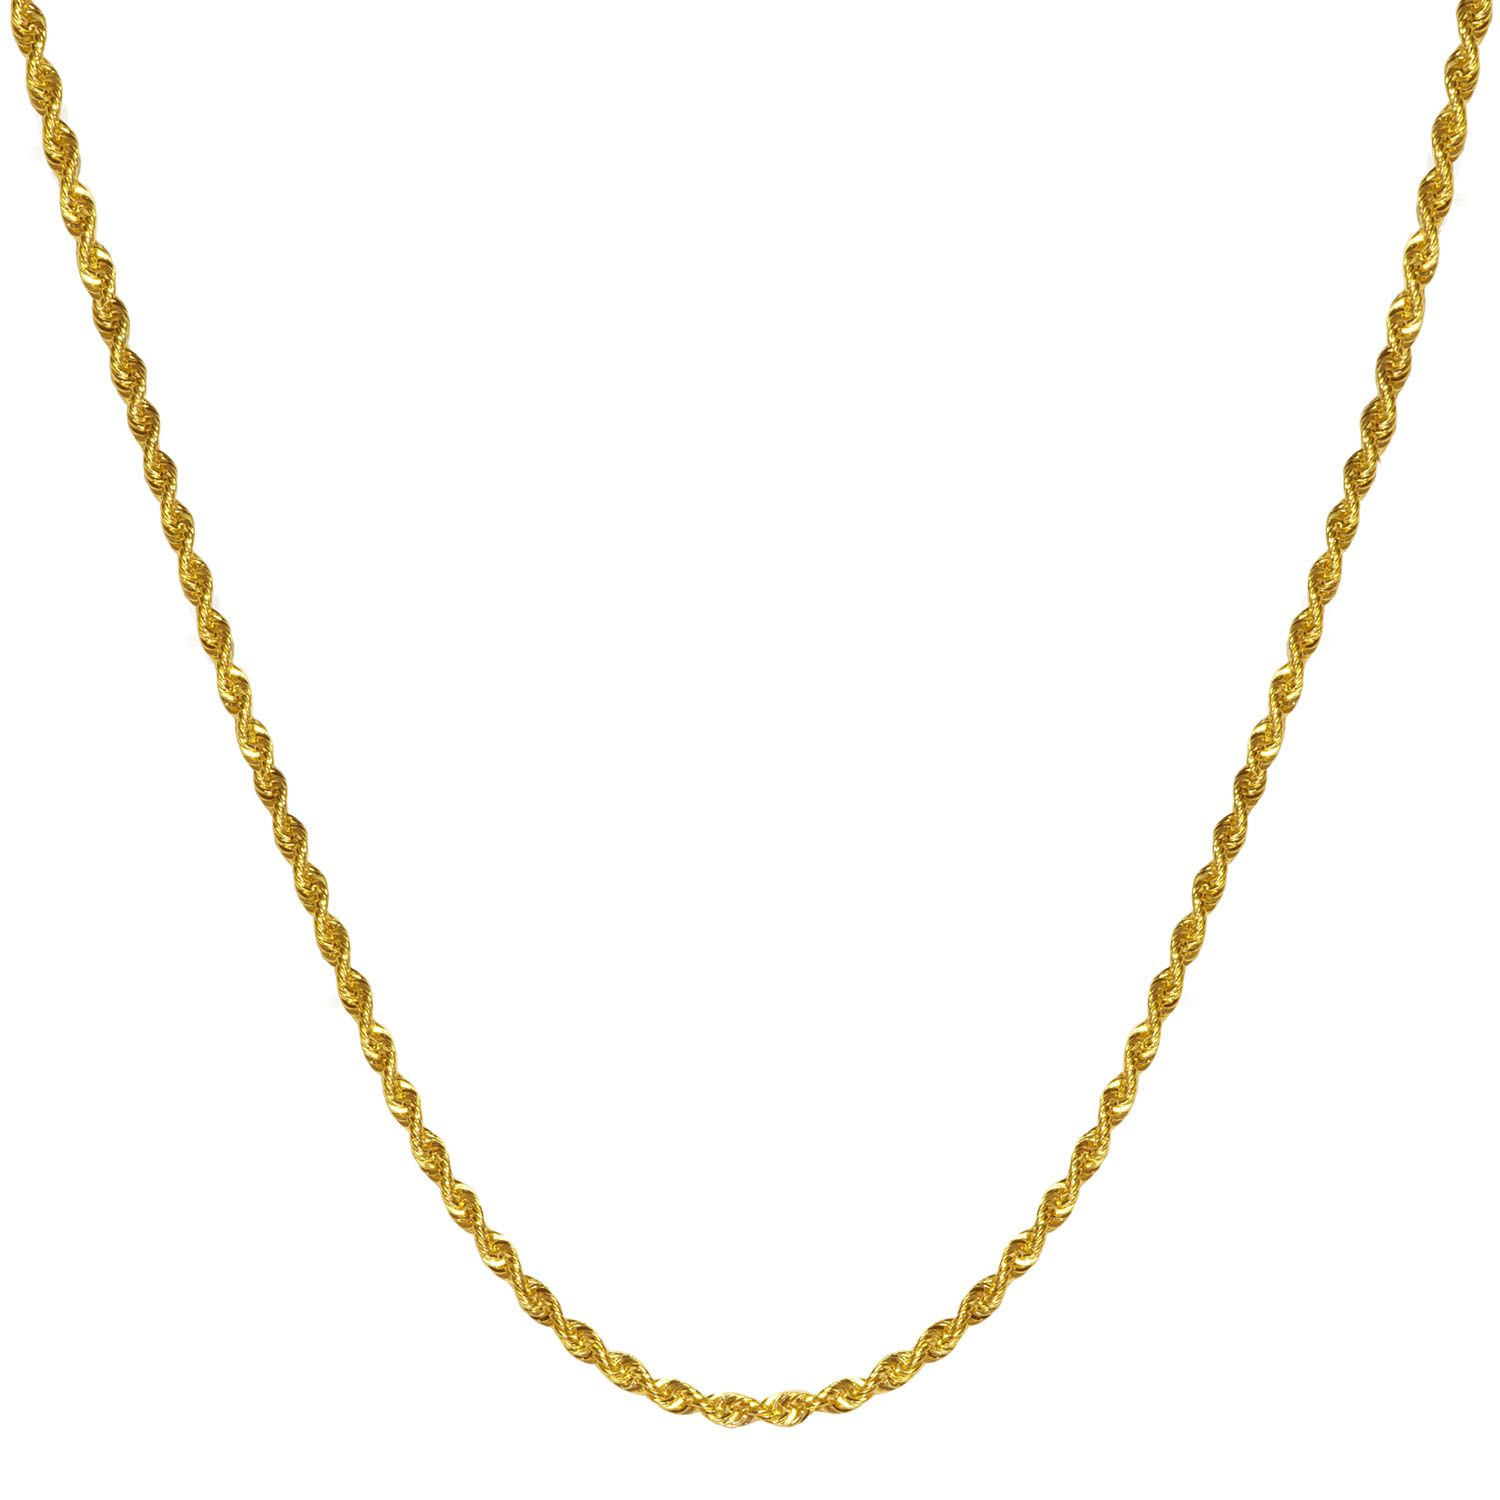 af1c2757e 2.5mm Light Rope Chain in 14k Yellow Gold - Jewelry Deals 80% OFF + $25 OFF  extra discount on purchases $500 & UP ! Enter PINPROMOT coupon at CHECKOUT  to ...